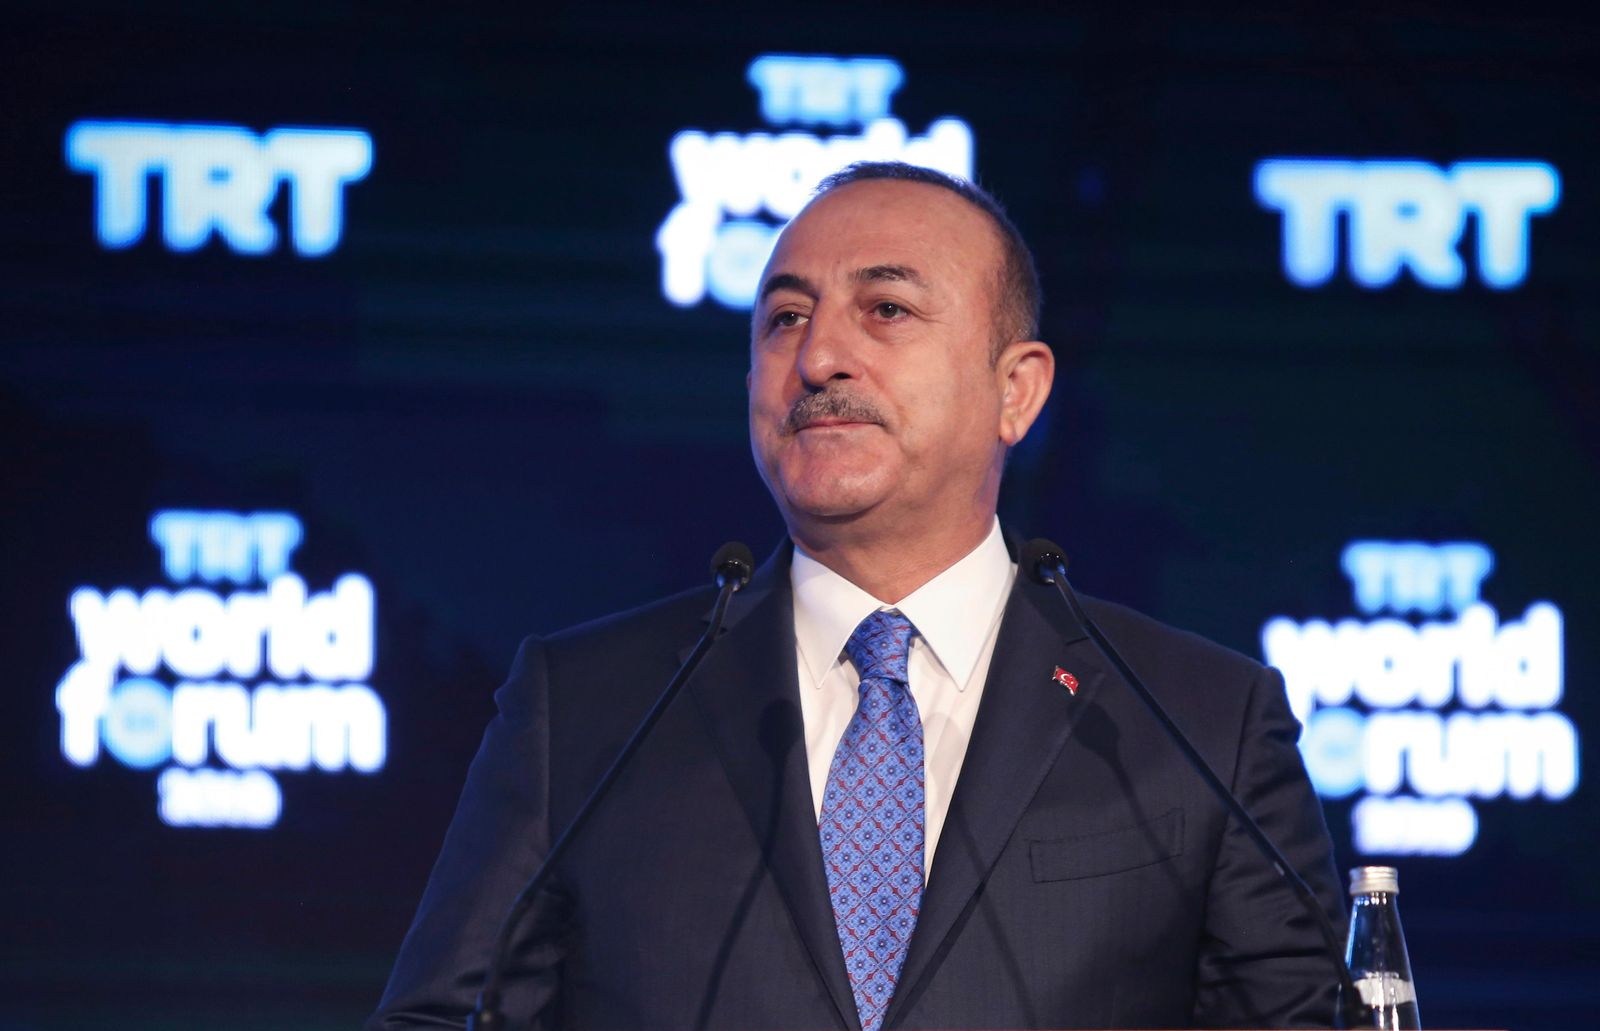 Turkish Foreign Minister Mevlut Cavusoglu speaks at a forum, in Istanbul, Monday, Oct. 21, 2019. Cavusoglu has renewed a warning that the country will resume its military offensive in northeast Syria if Kurdish fighters do not vacate the region at the end of a U.S.-brokered cease-fire that ends Tuesday evening.(Turkish Foreign Ministry via AP, Pool )